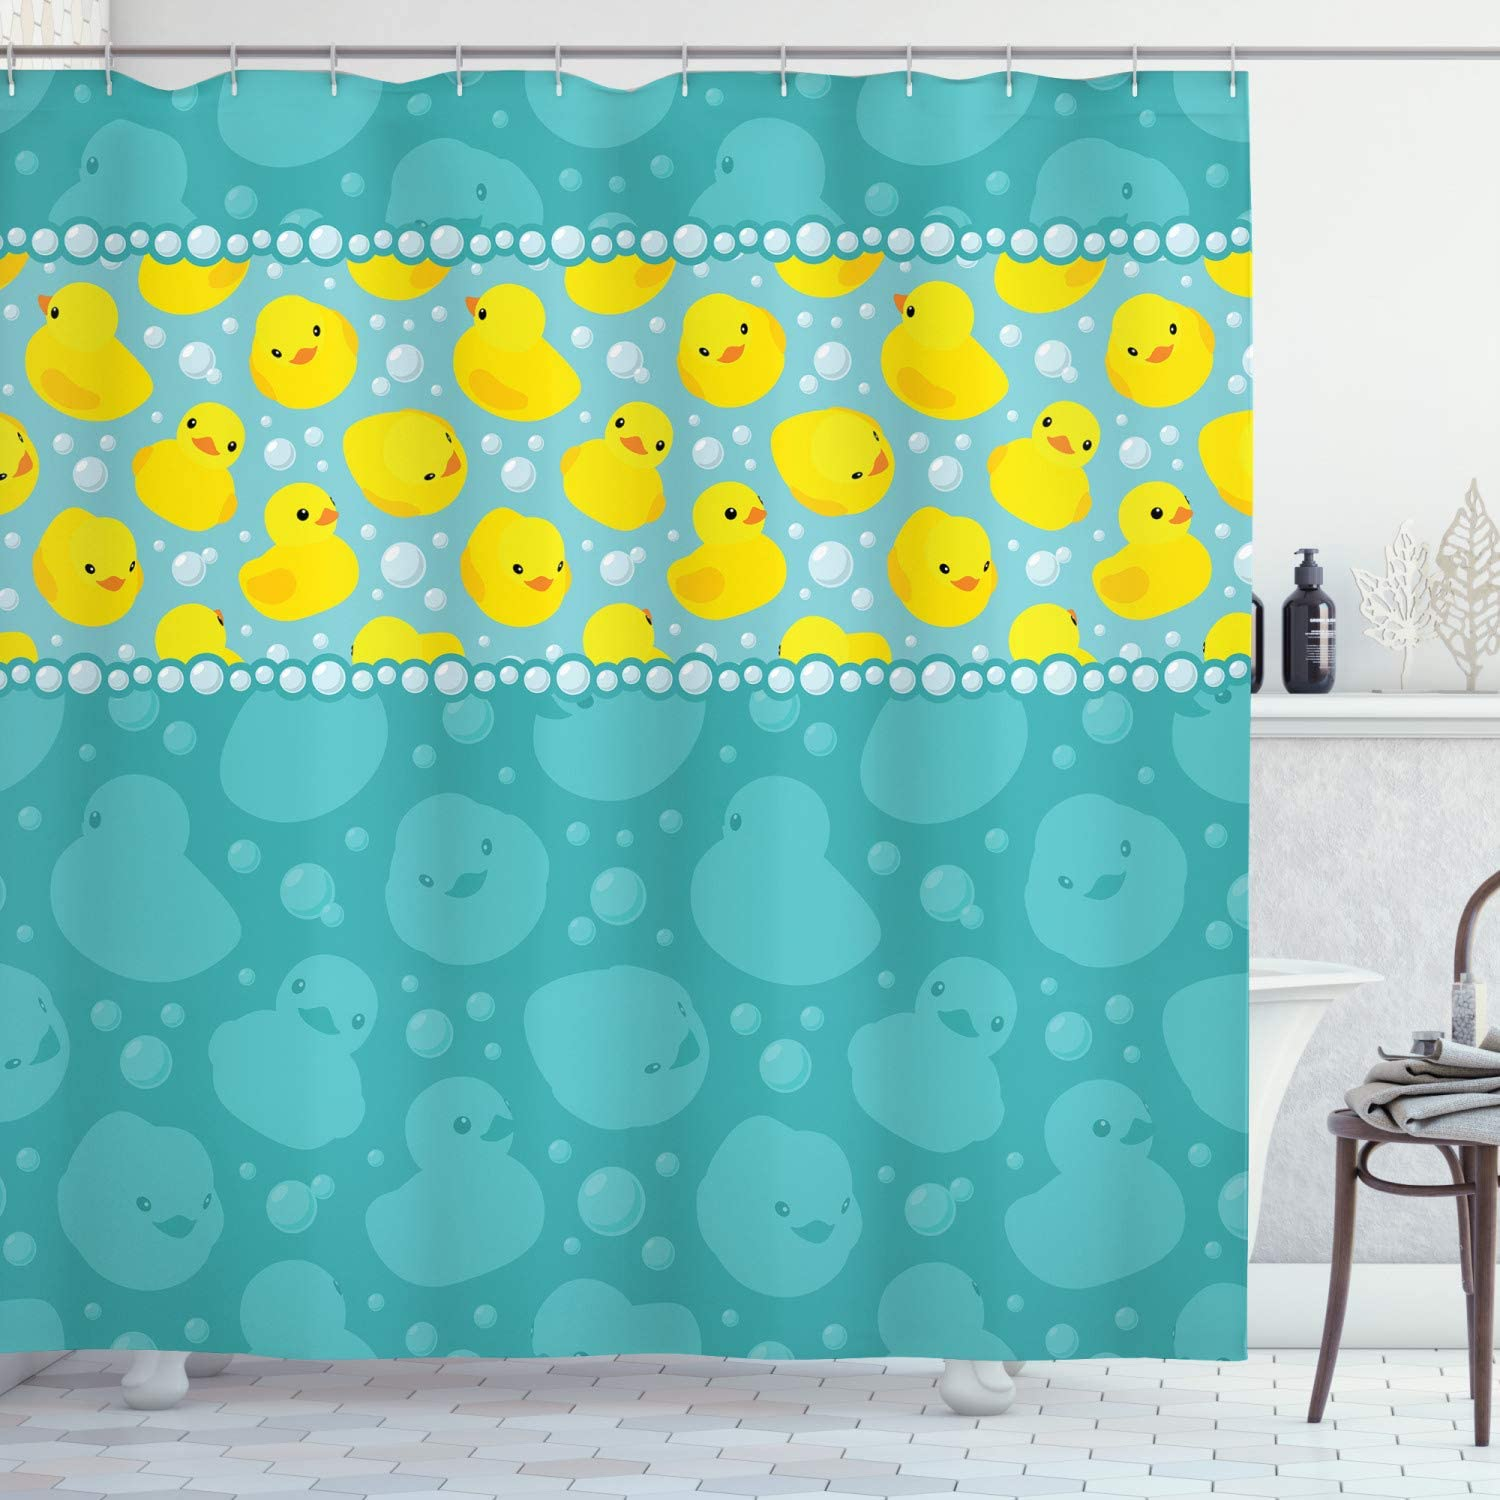 """Ambesonne Rubber Duck Shower Curtain, Yellow Cartoon Duckies Swimming in Water Pattern with Fun Bubbles Aqua Colors, Cloth Fabric Bathroom Decor Set with Hooks, 70"""" Long, Teal Yellow"""